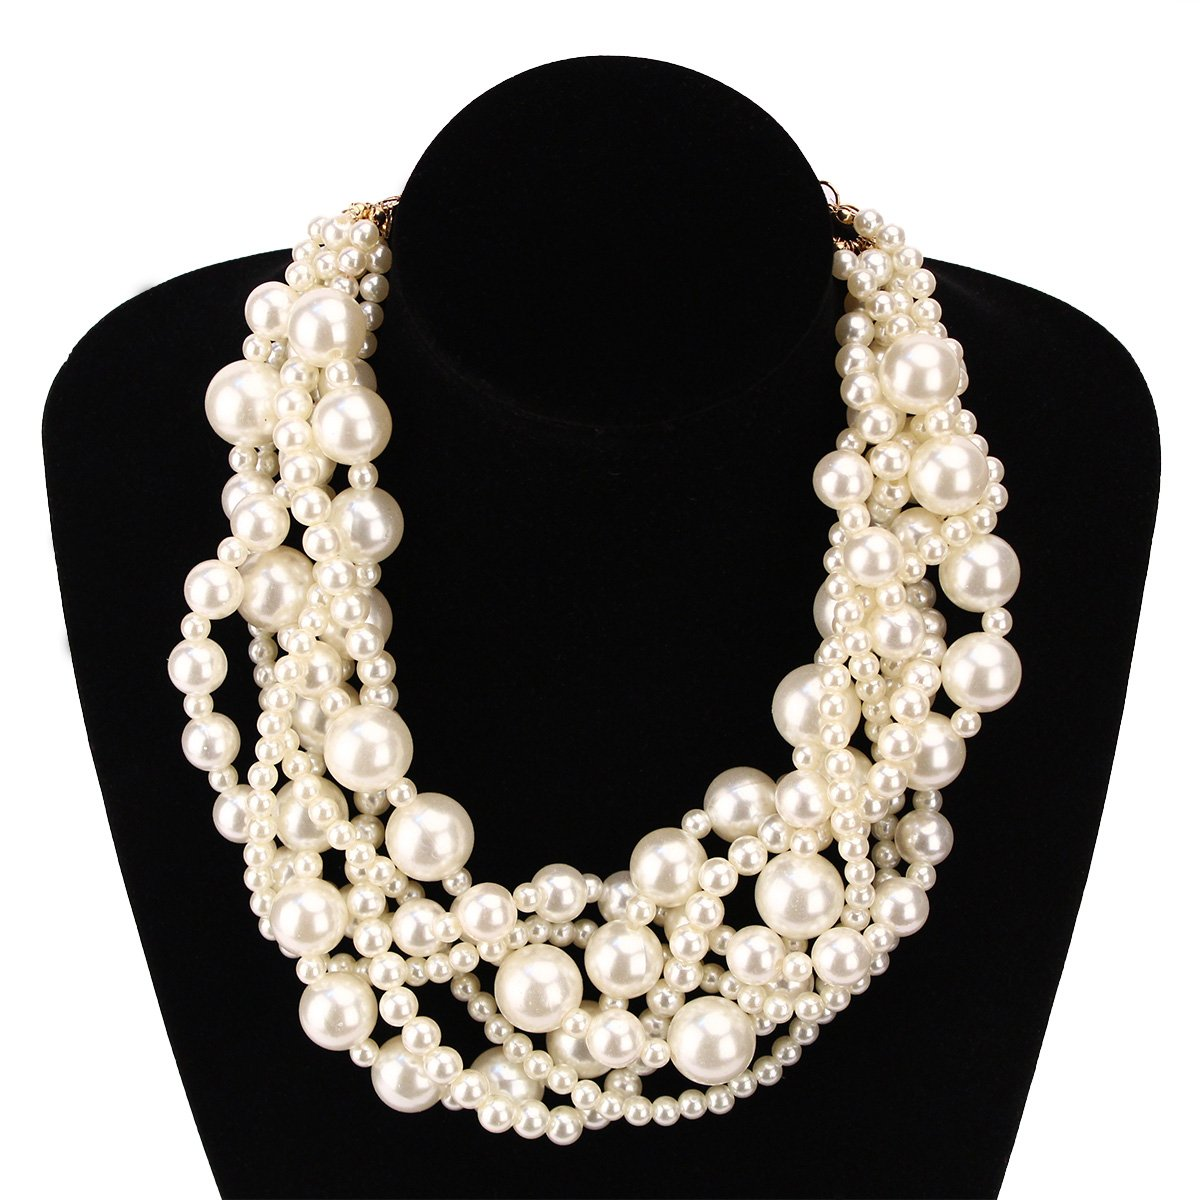 MeliMe Womens Imitation Pearl Twisty Chunky Bib Necklace Chokers for Wedding Party Melime Top B06XNMVW9B_US